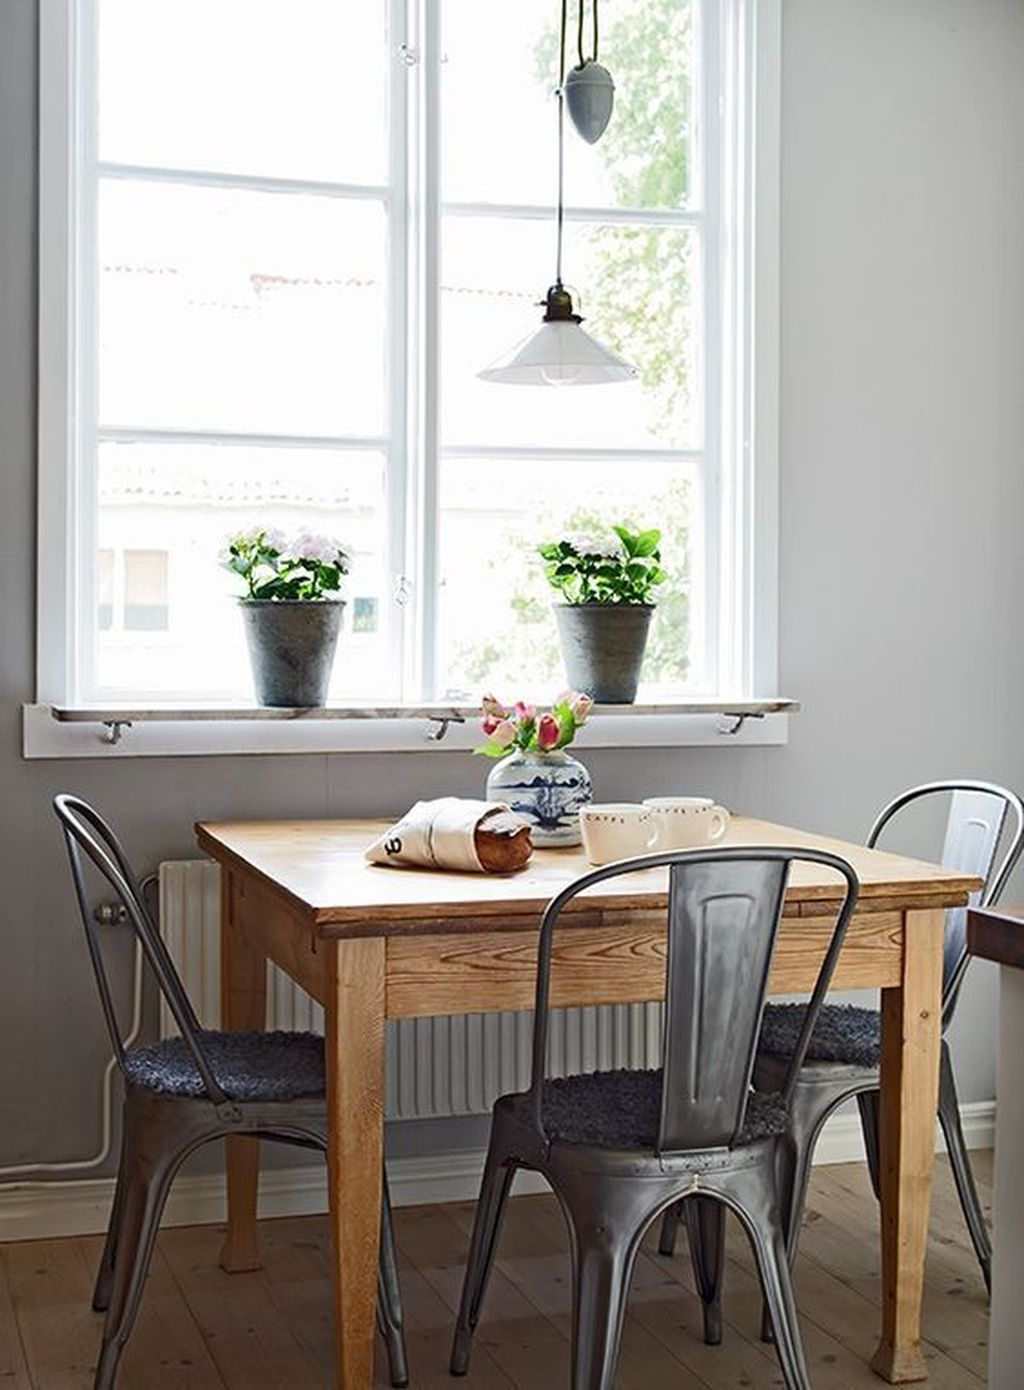 Awesome Small Dining Room Table Decor Ideas To Copy Asap 34